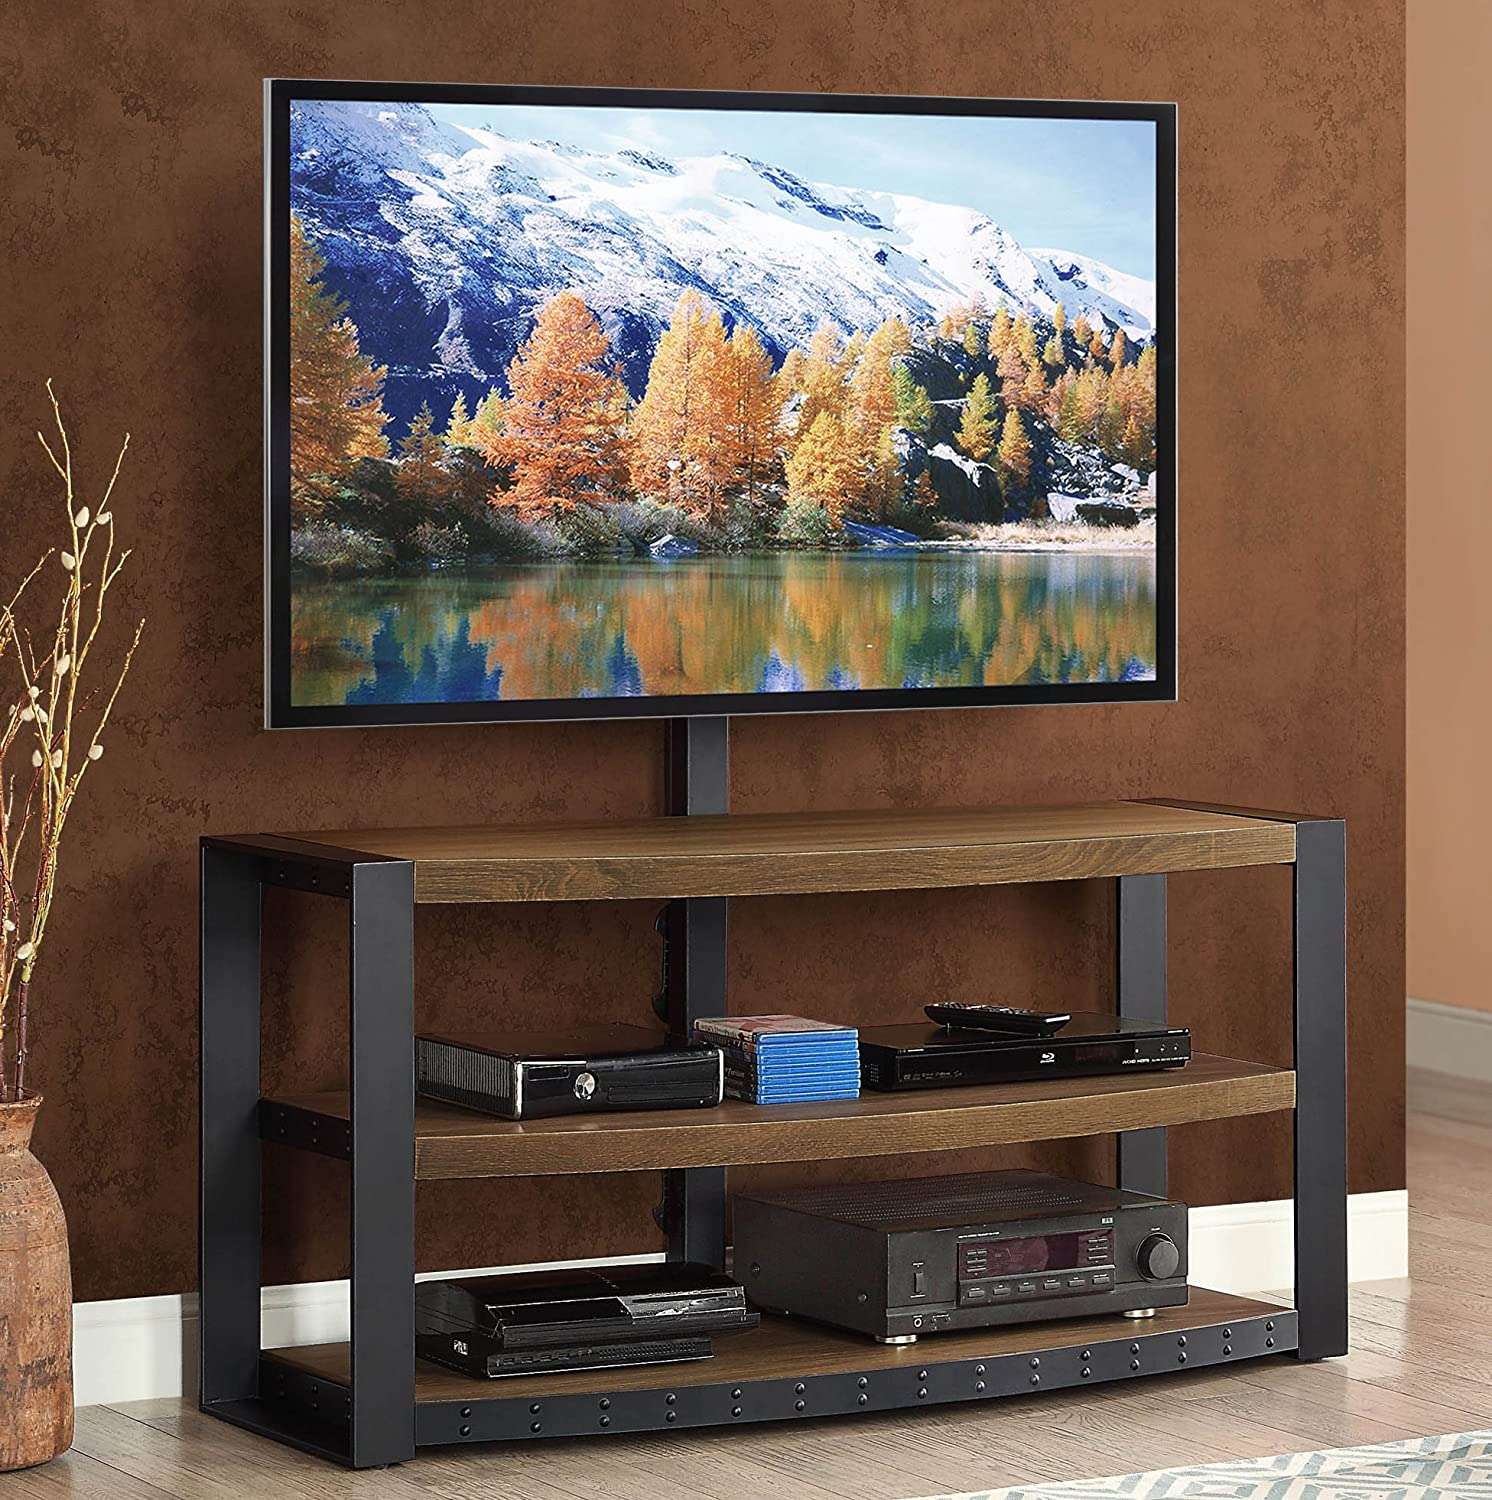 Whalen Furniture Santa Fe 3 In 1 TV Stand